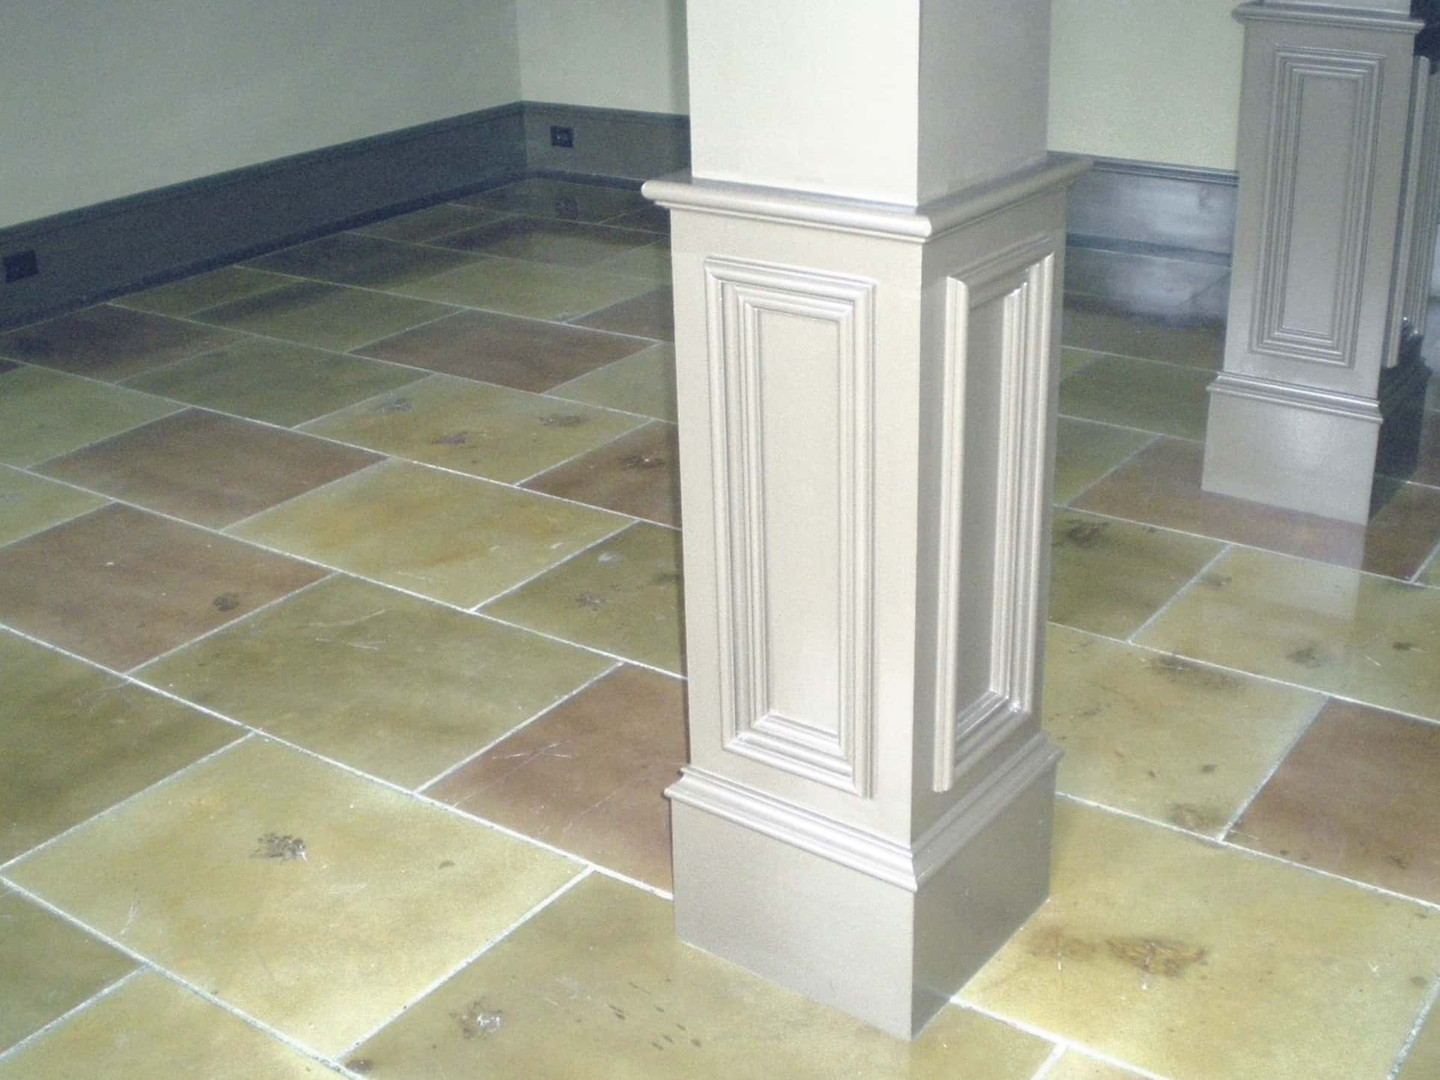 Concrete staggered tile